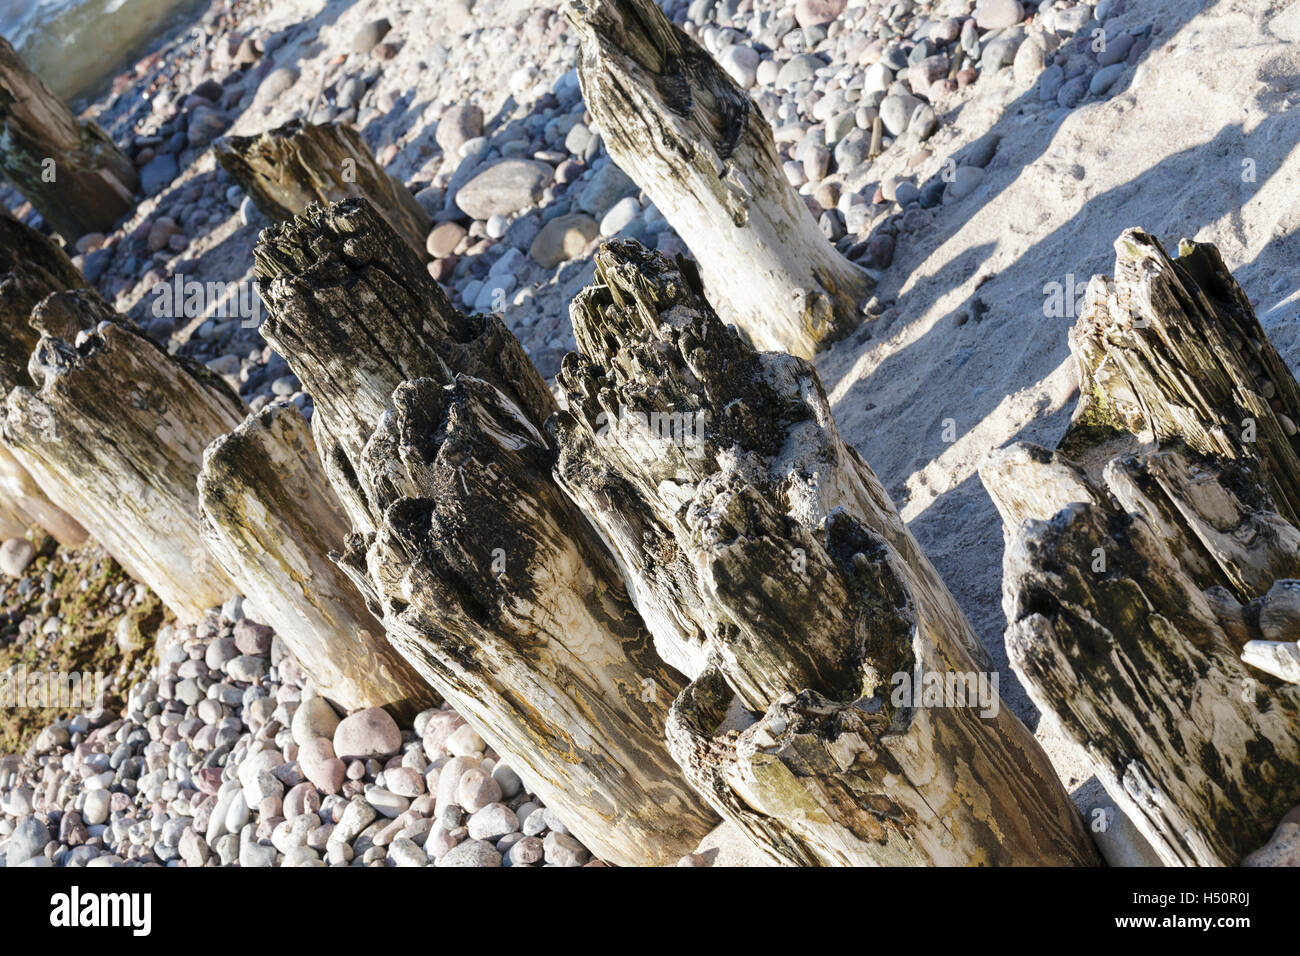 Partially rotted wooden breakwaters - Stock Image